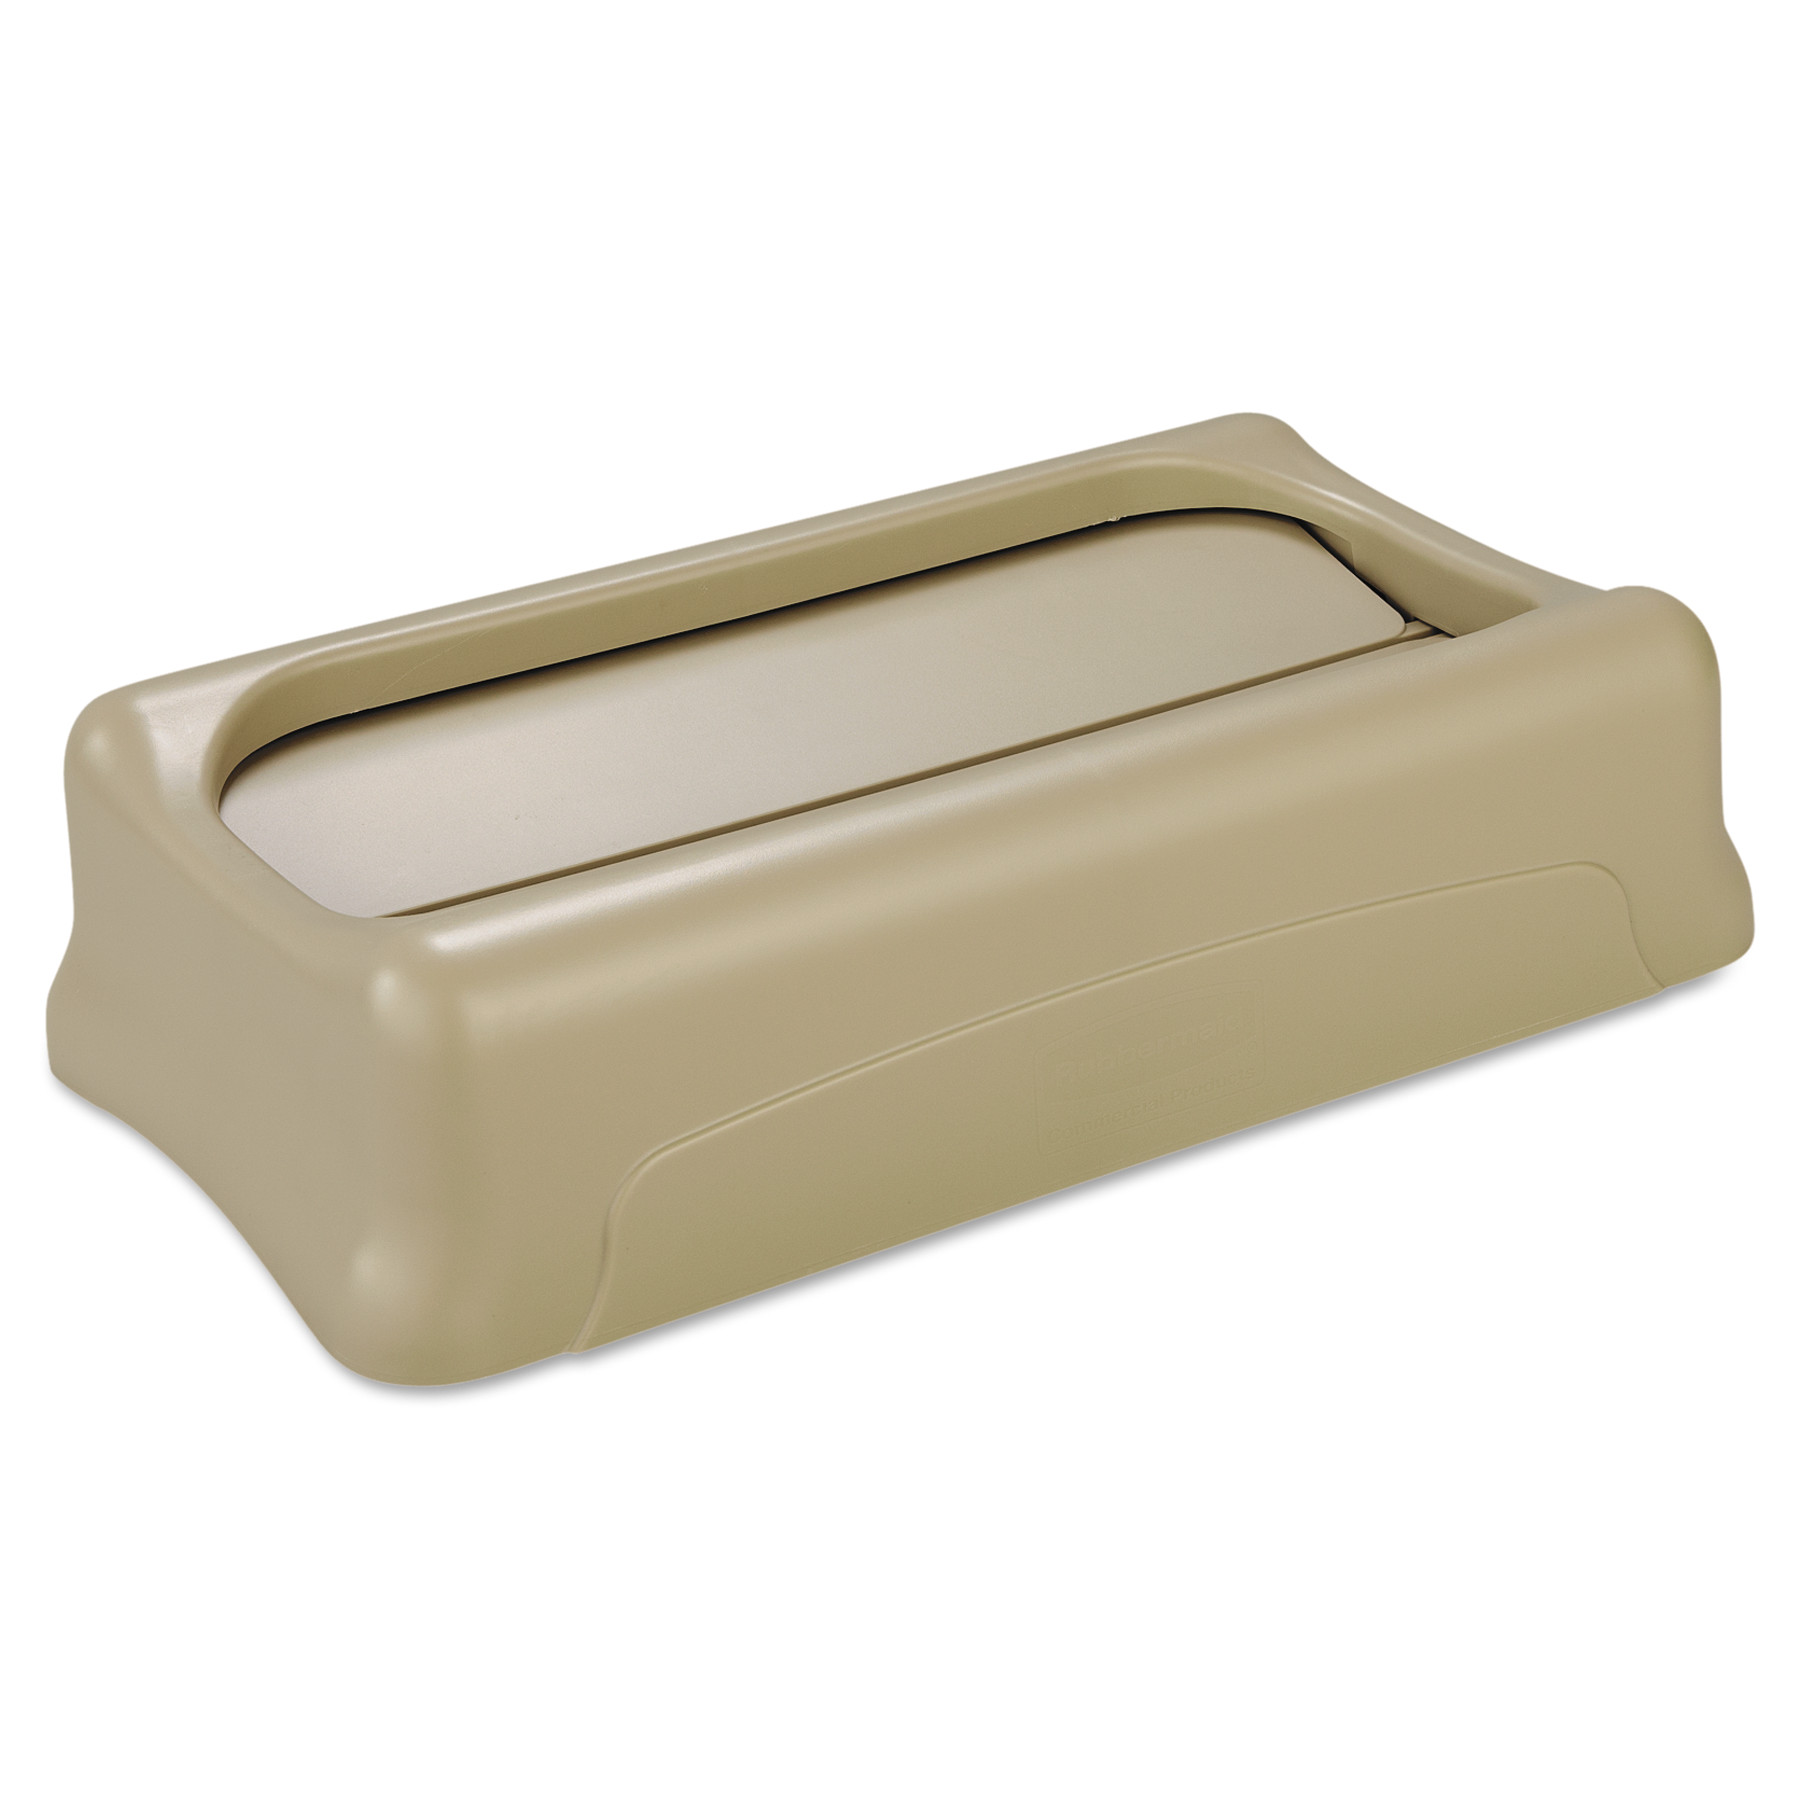 Rubbermaid Commercial Slim Jim Swing Lid, 11 3/8w x 20 1/2d x 5h, Beige